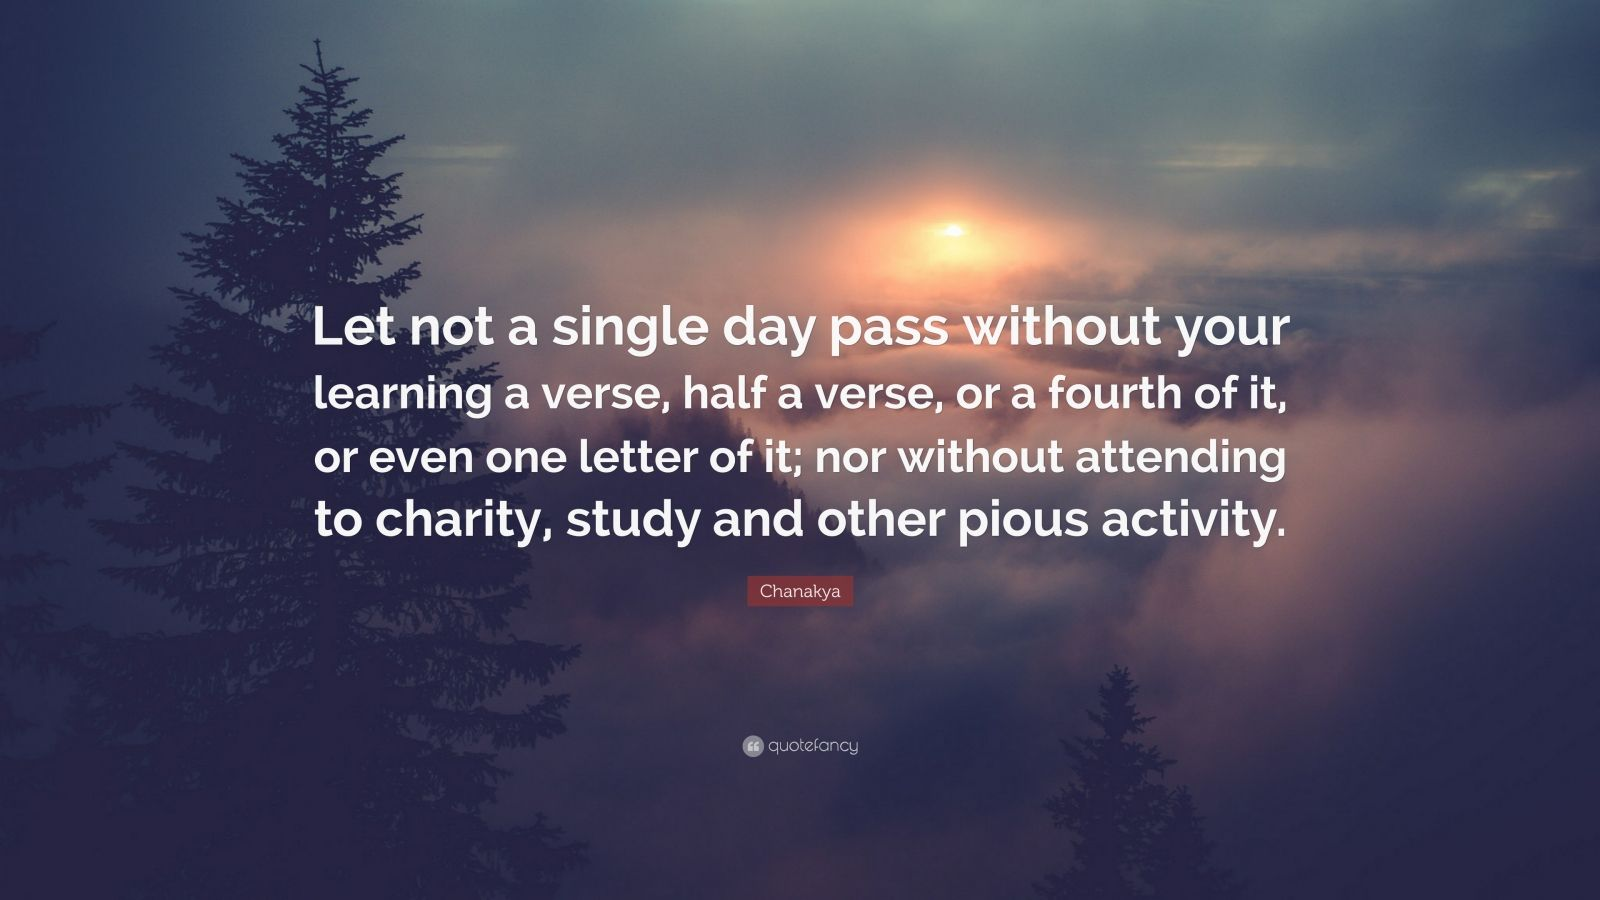 """Chanakya Quote: """"Let not a single day pass without your learning a verse, half a verse, or a fourth of it, or even one letter of it; nor without attending to charity, study and other pious activity."""""""